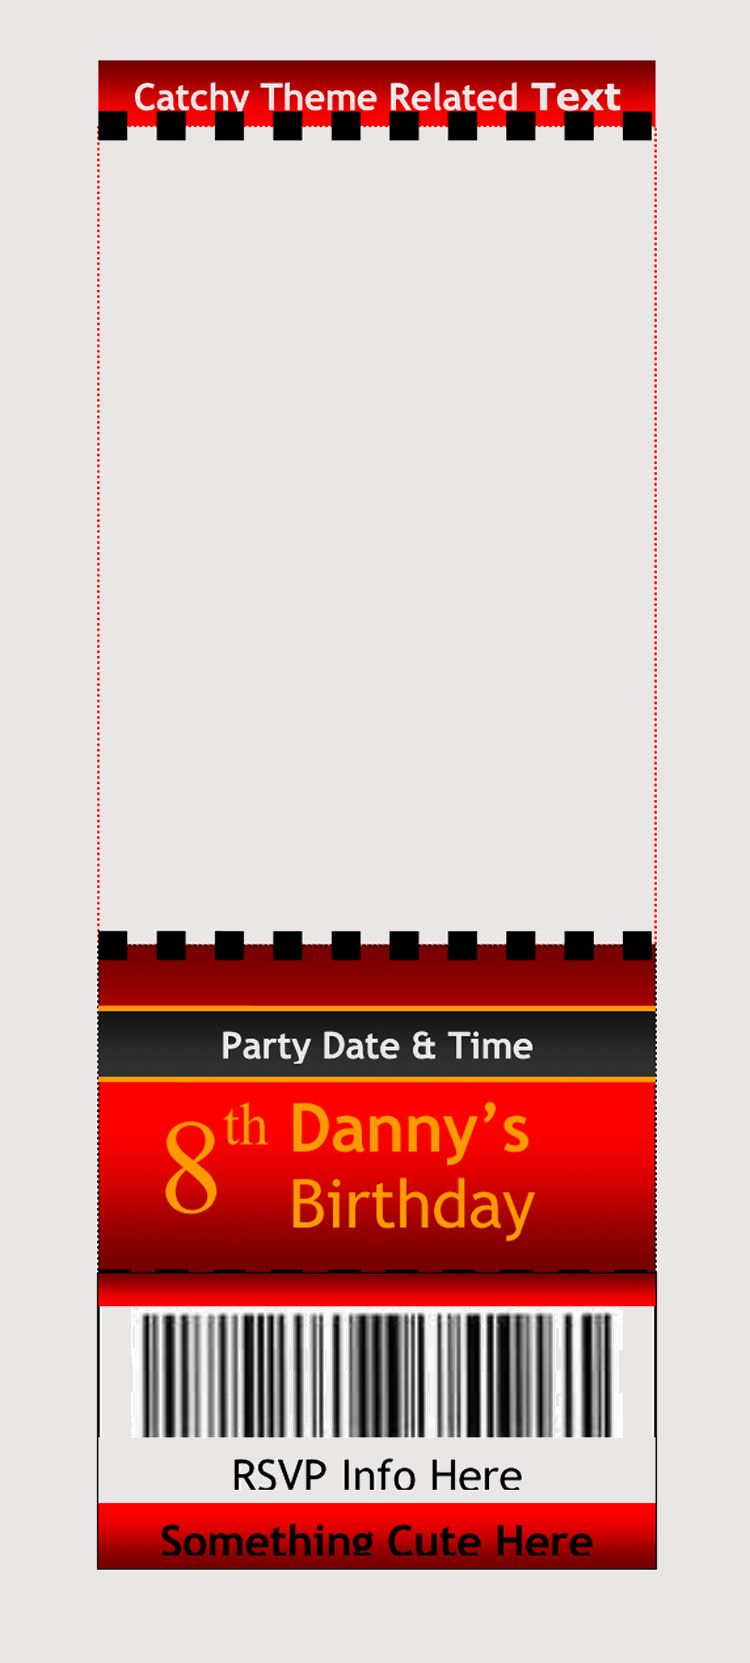 Theme Raffle Ticket Template Raffle Tickets Template Ticket Template Free Ticket Template Create your own tickets free